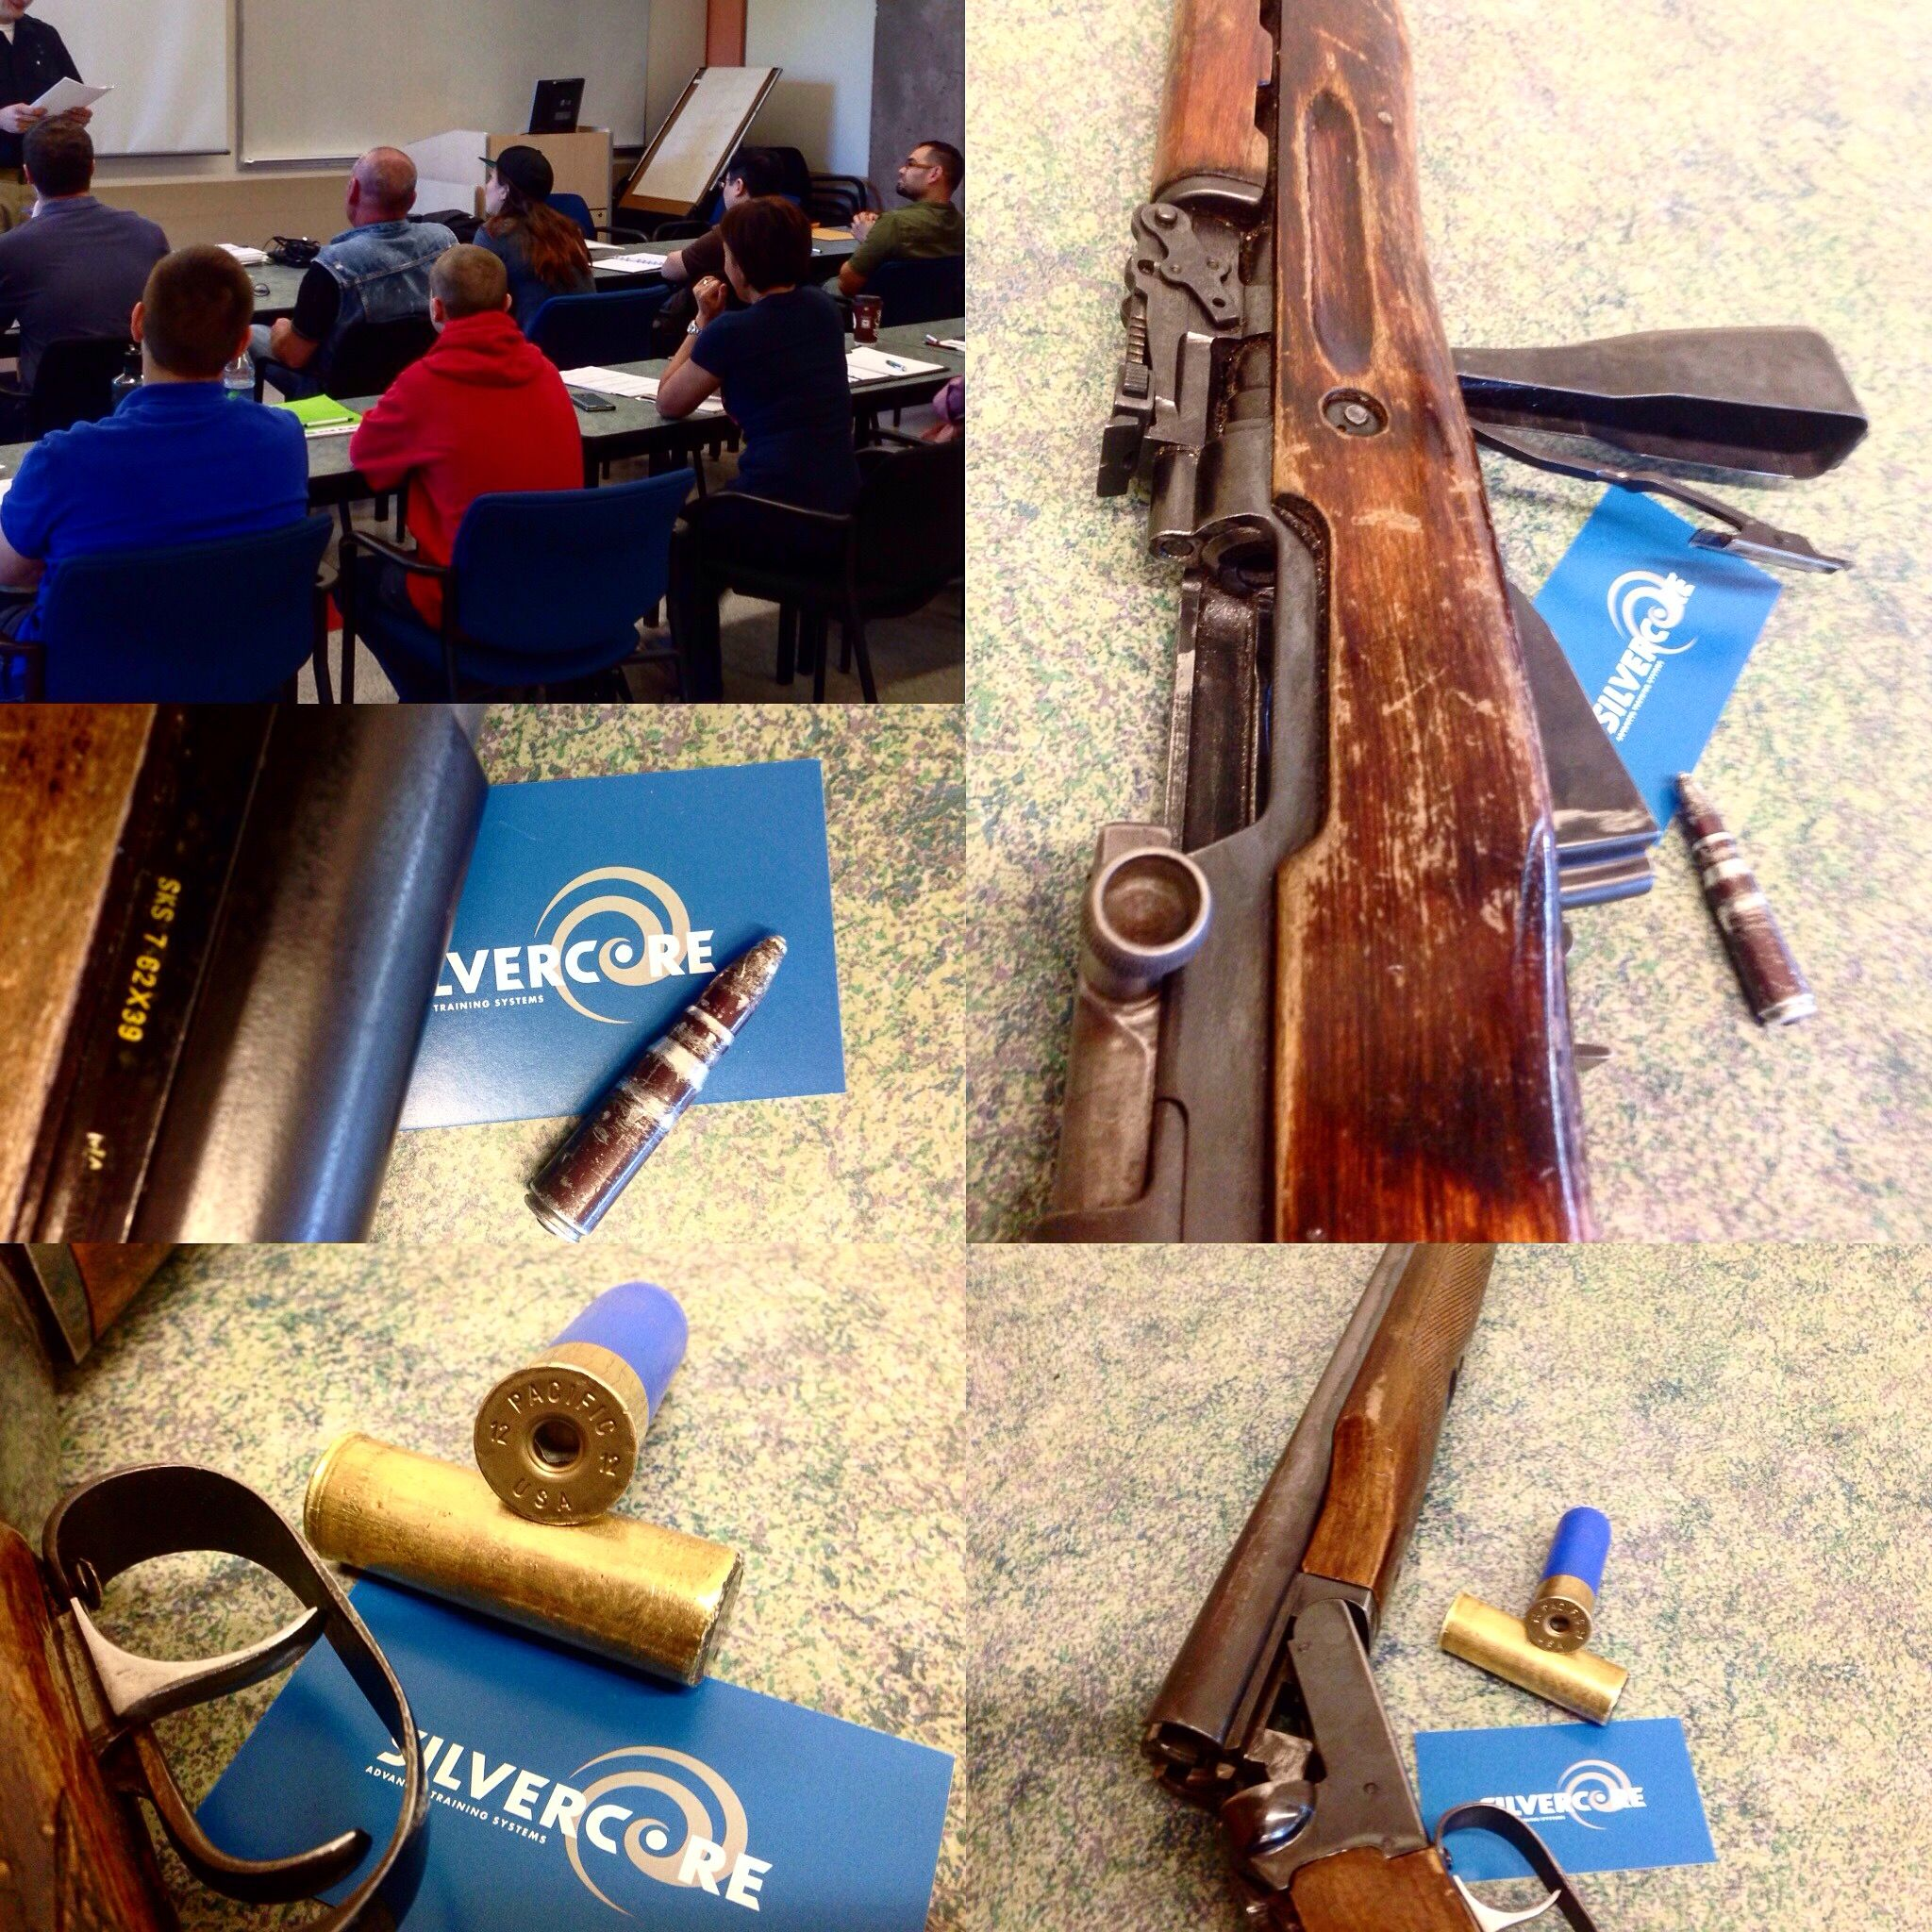 DAY 2 Of the Silvercore Canadian Firearms Safety Course